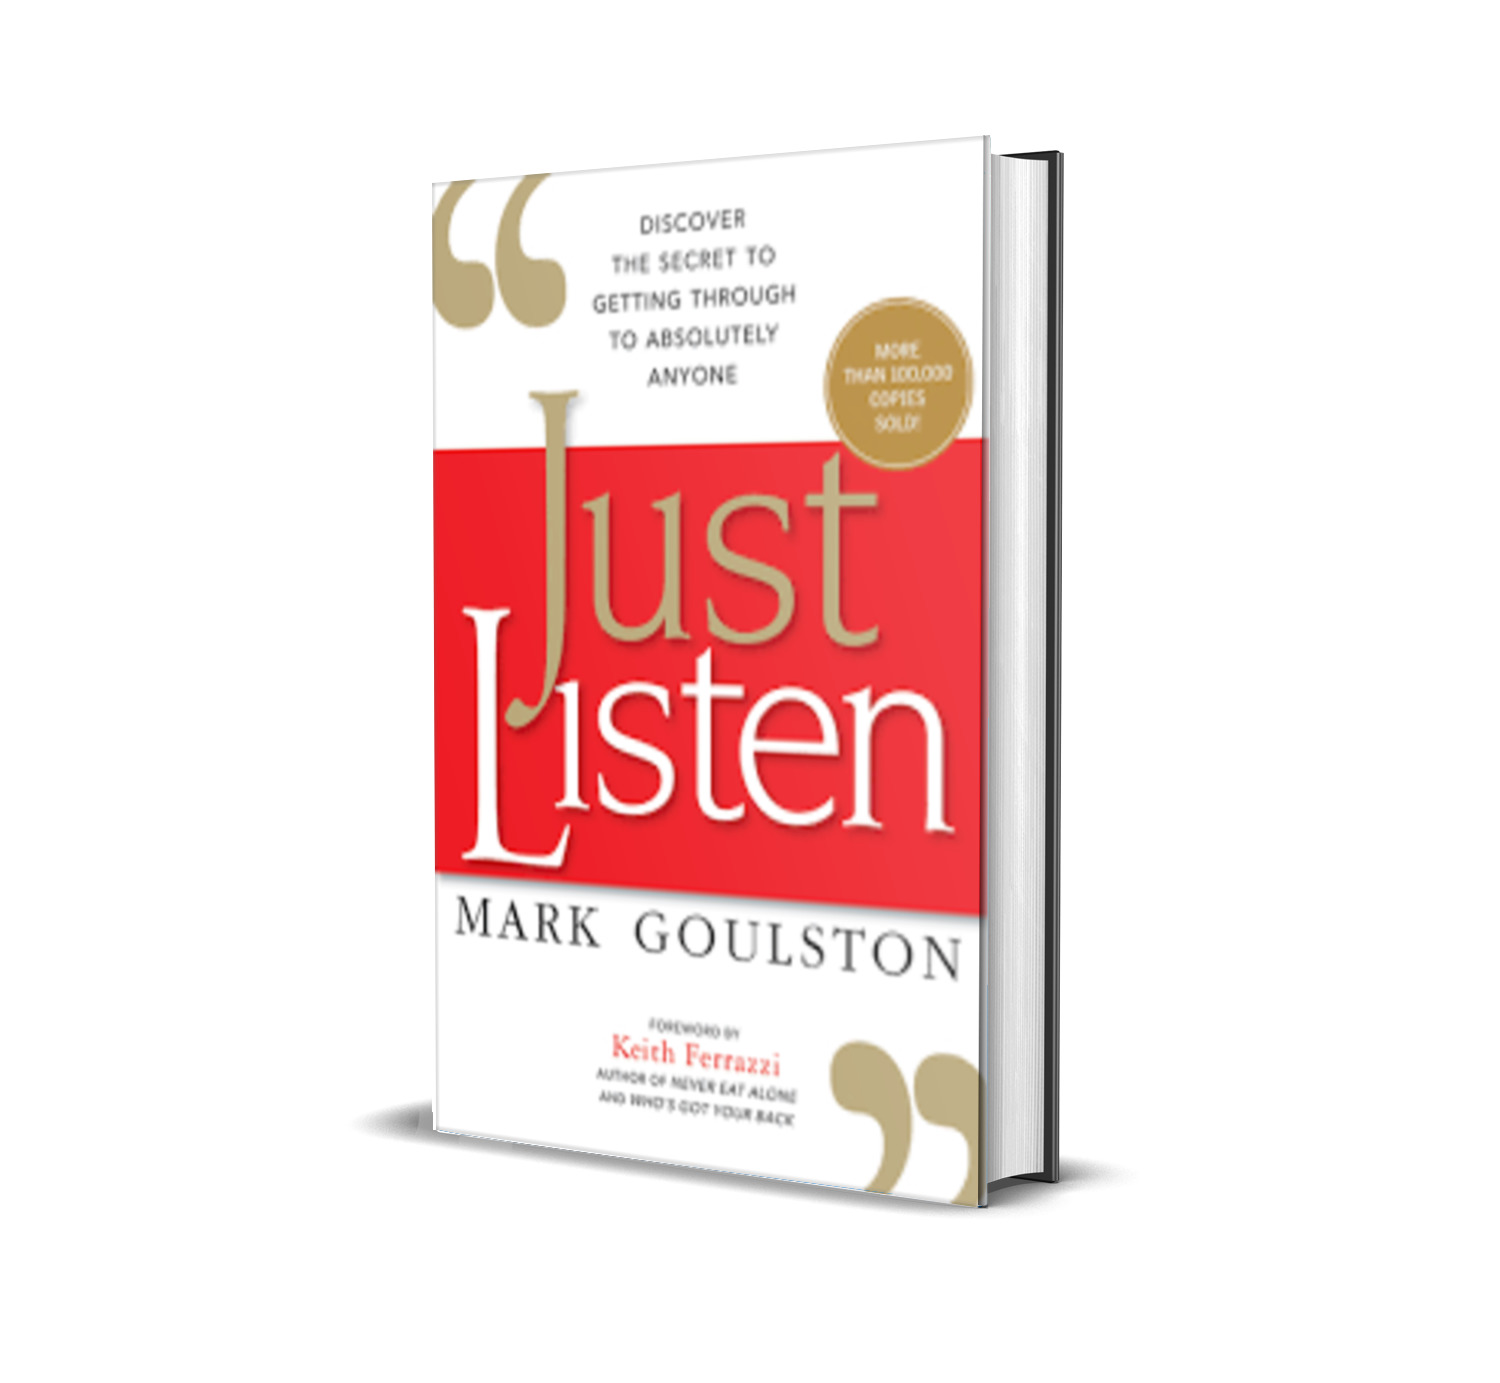 Just listen:discover the secret to getting through to anyone- Mark Goulston